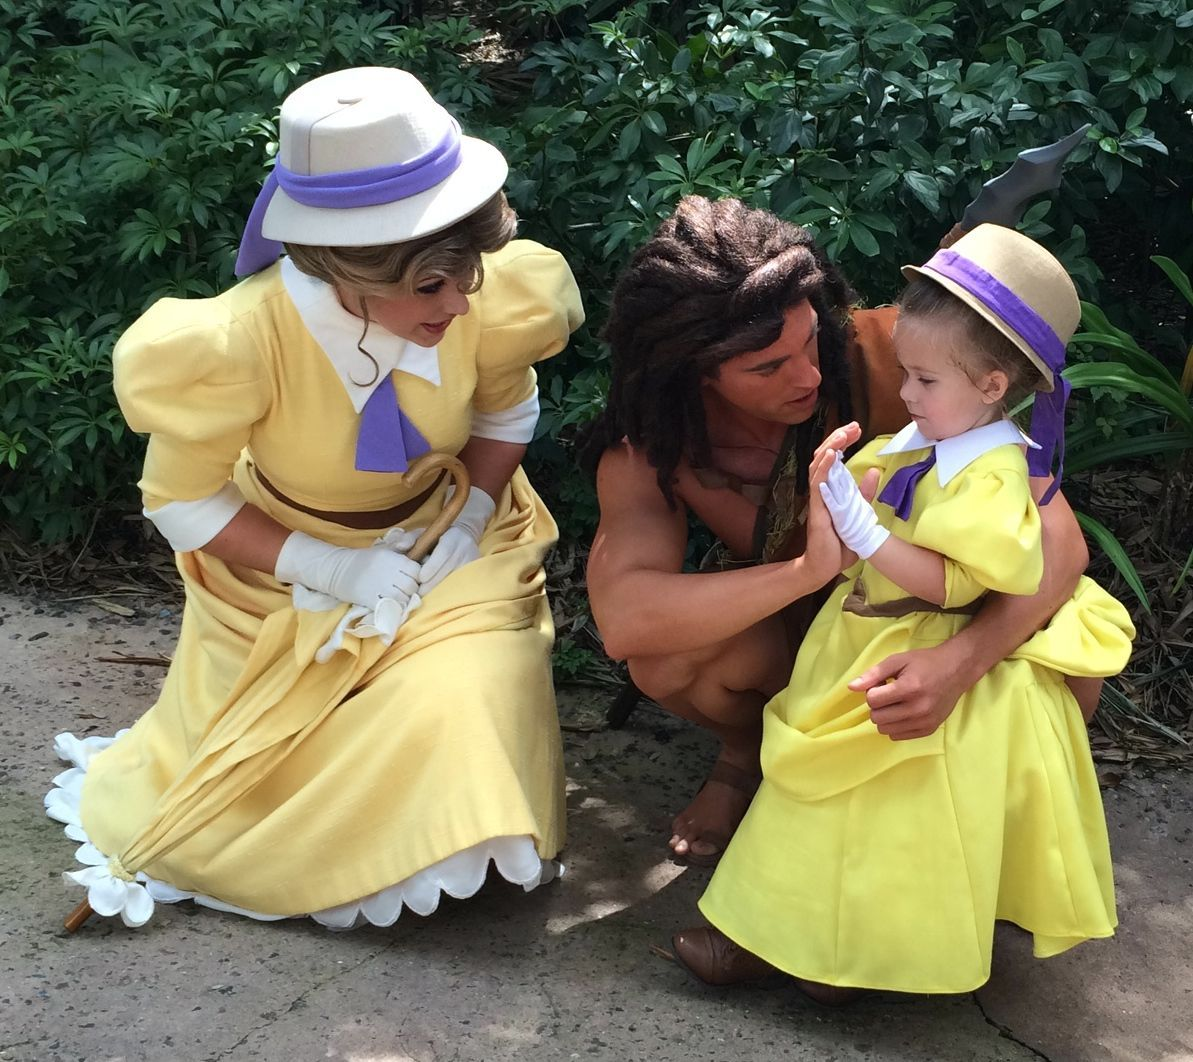 Jane Porter!! Oh my gosh they actually have Tarzan characters at Disney World?! We have to go back.